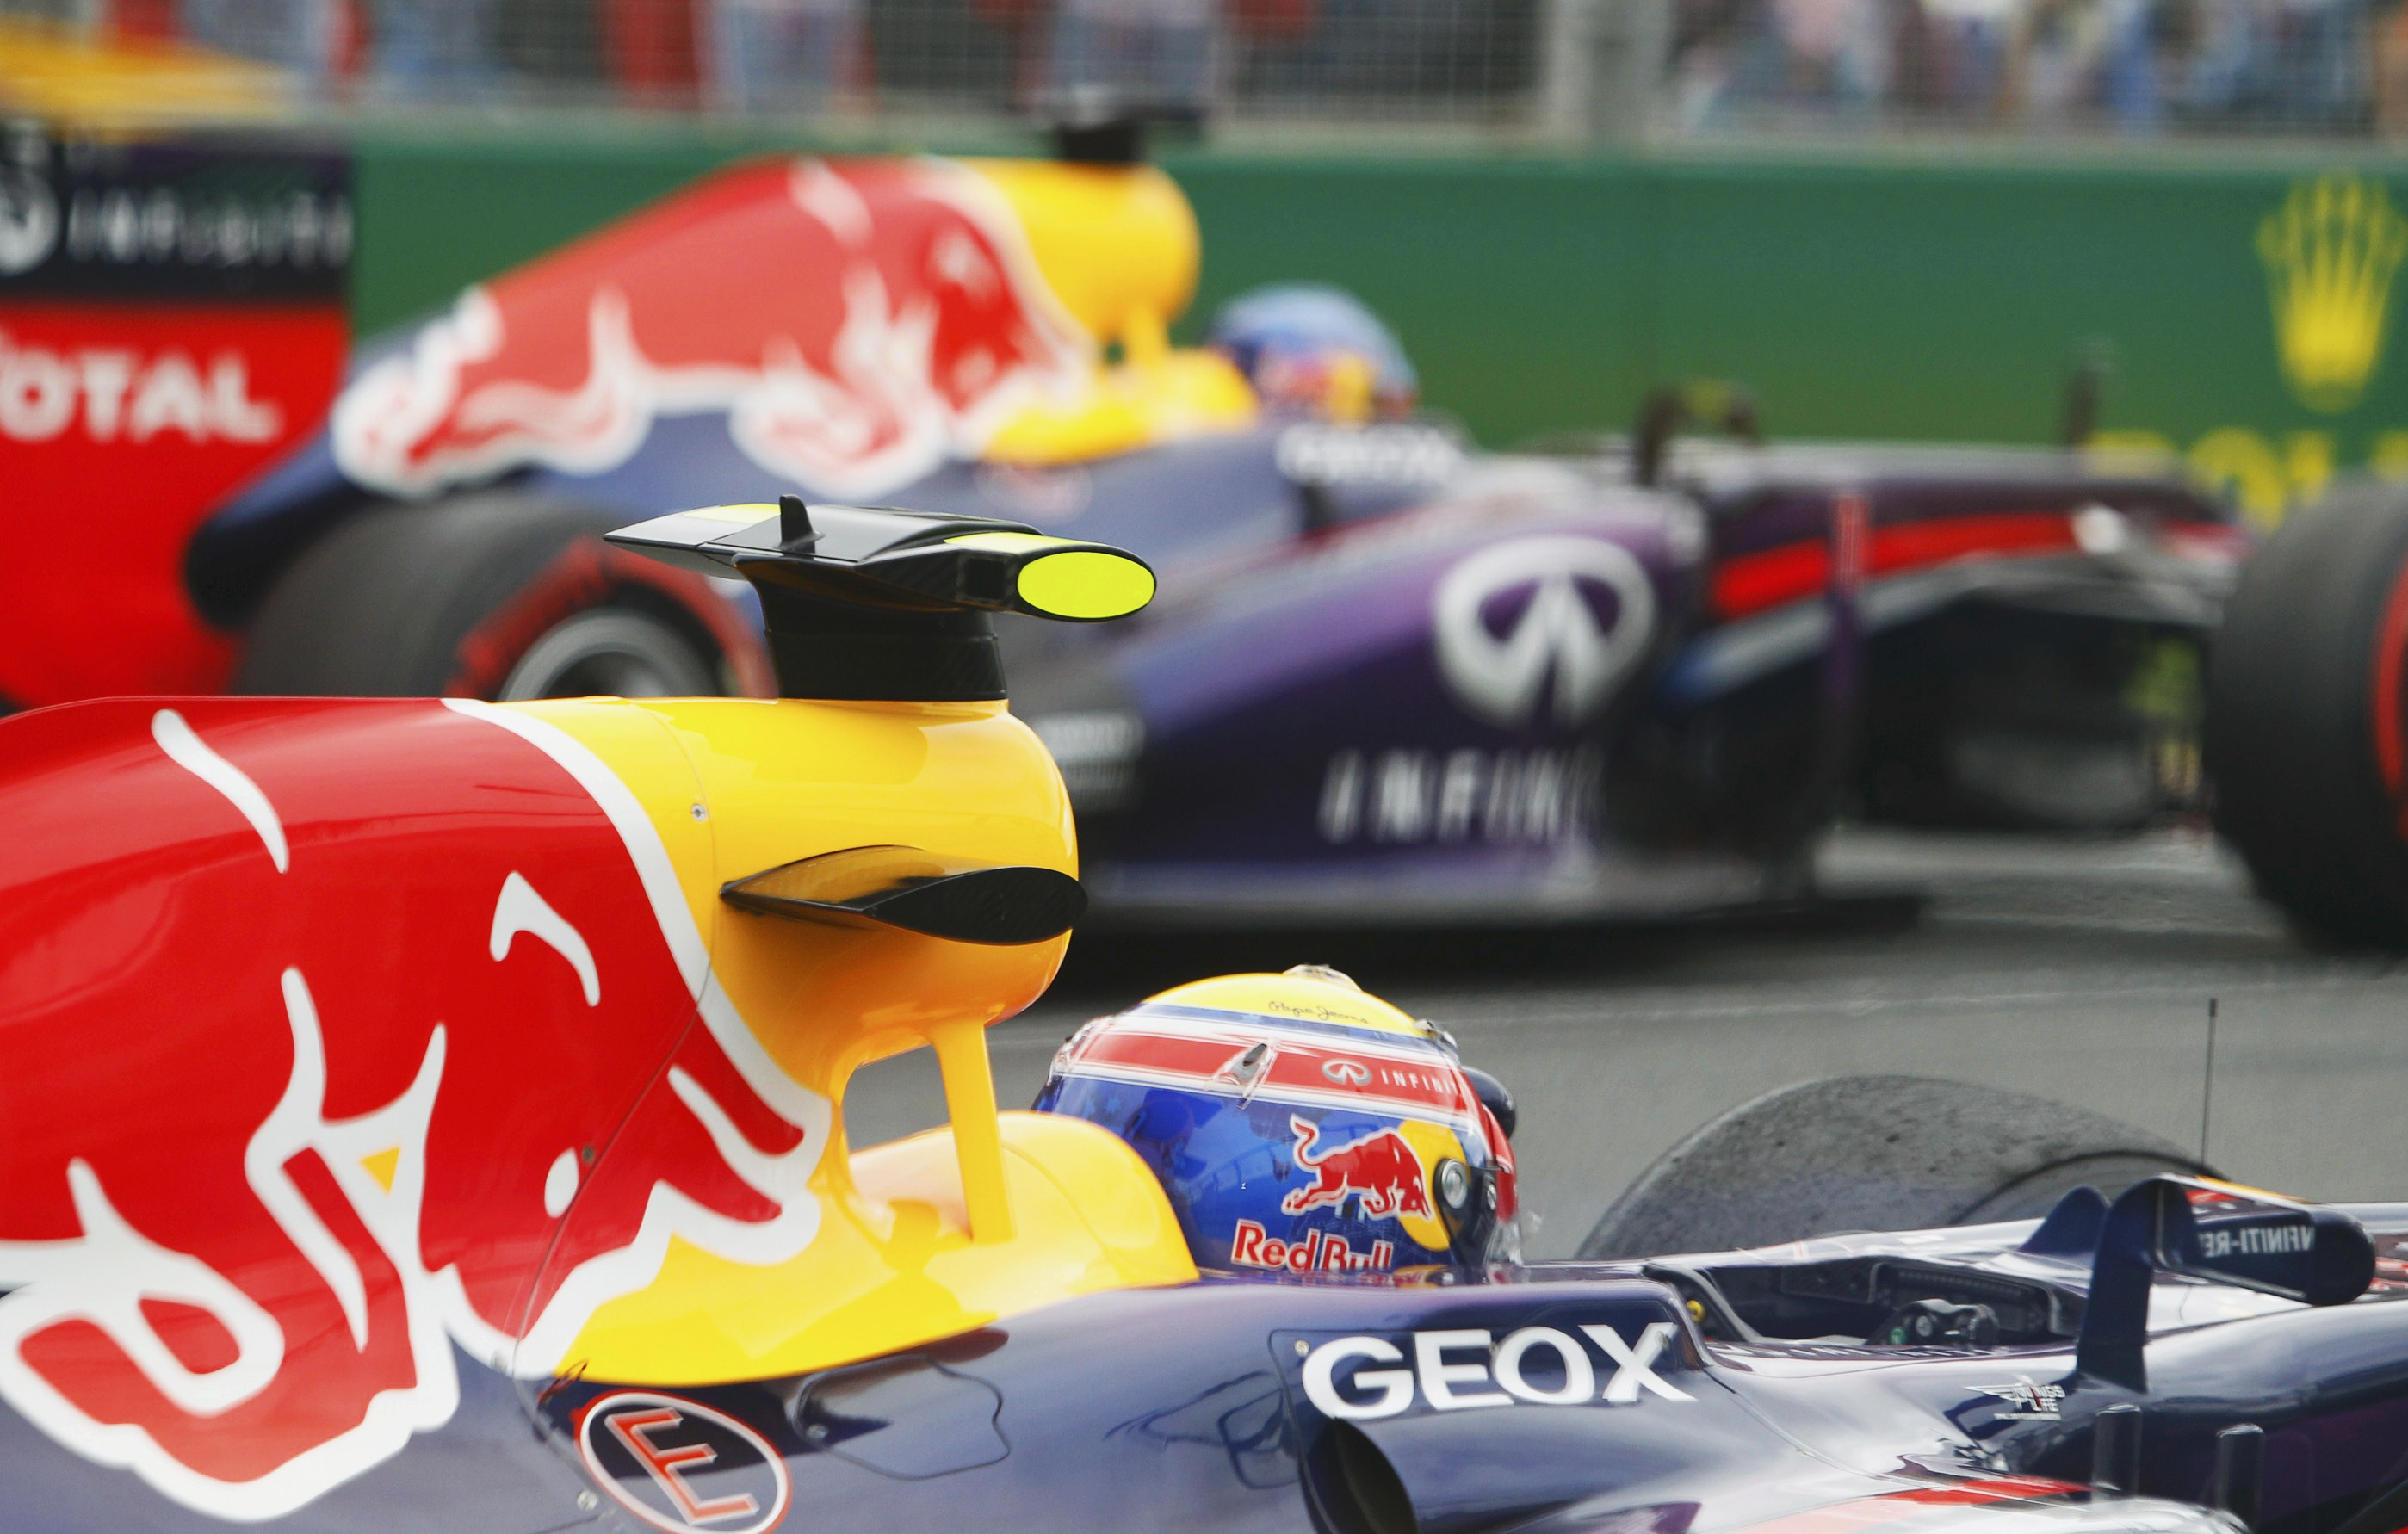 Los Red Bull de Frmula Uno de Mark Webber, de Australia, y Sebastian Vettel, de Alemania, esperan el inicio del Gran Premio de Australia.